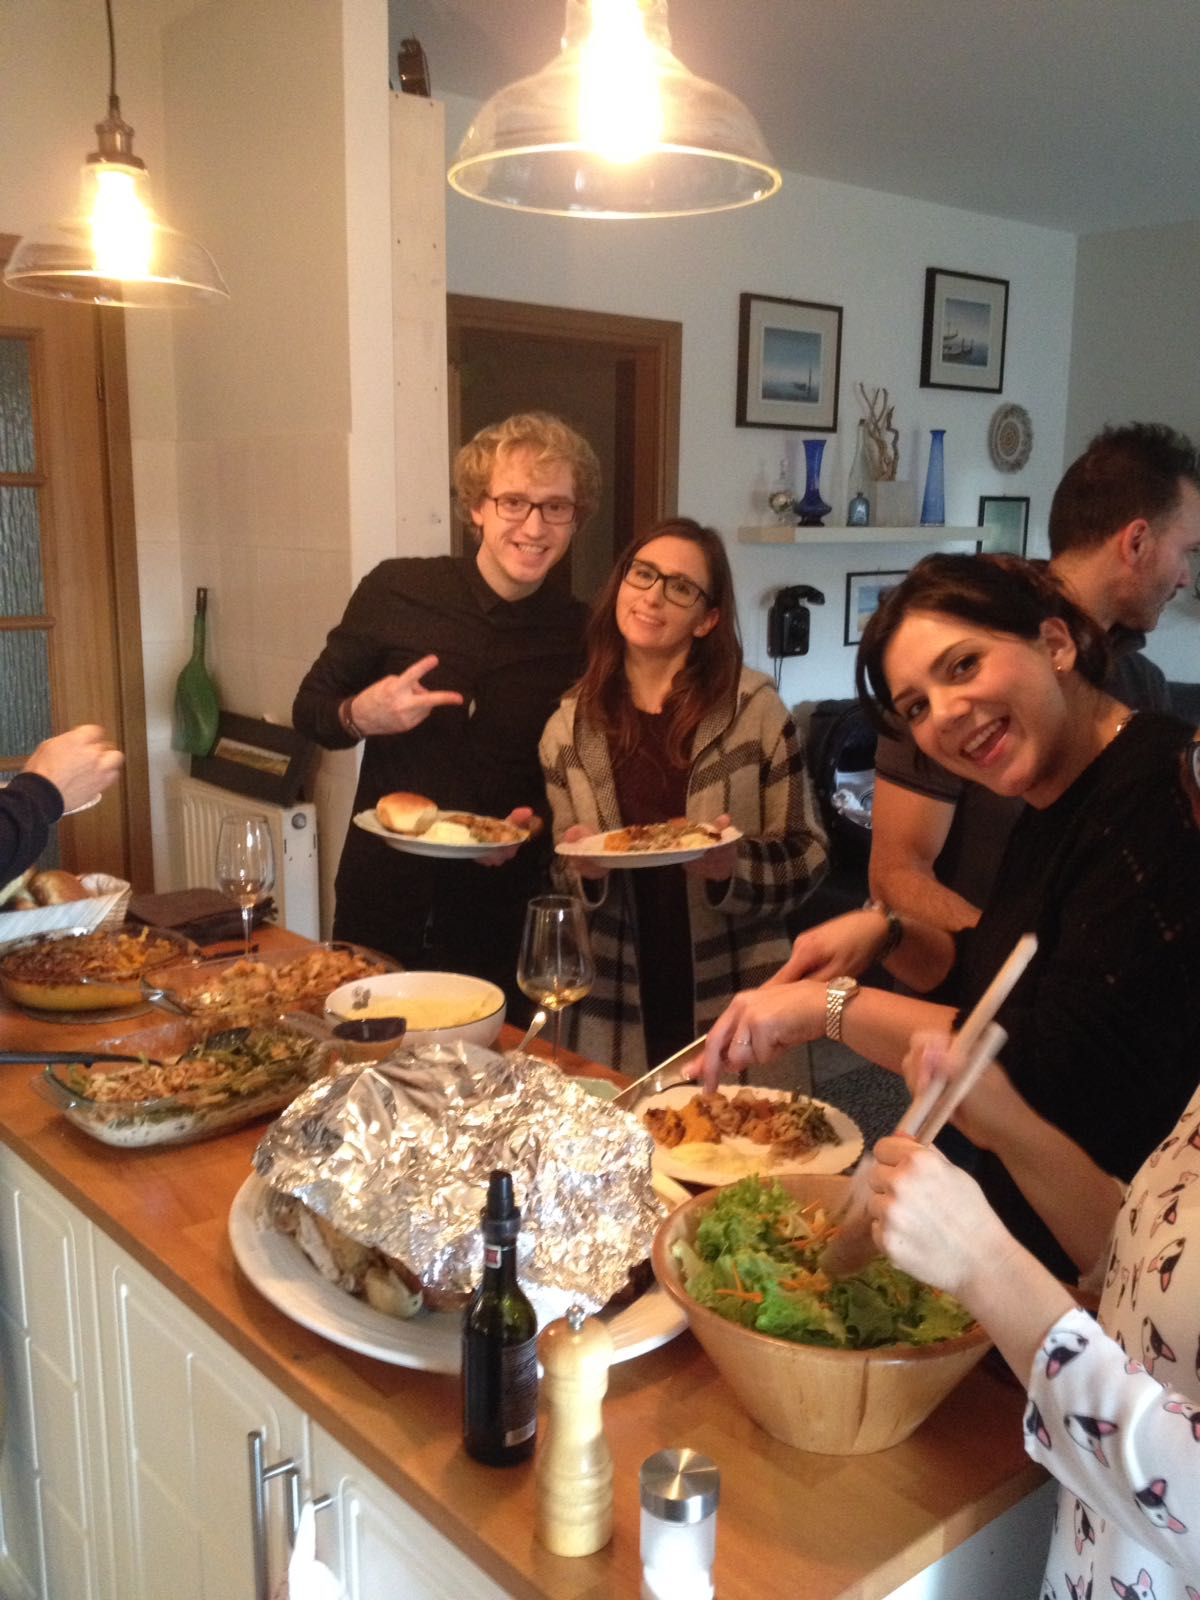 This past Sunday we celebrated Thanksgiving with our community group